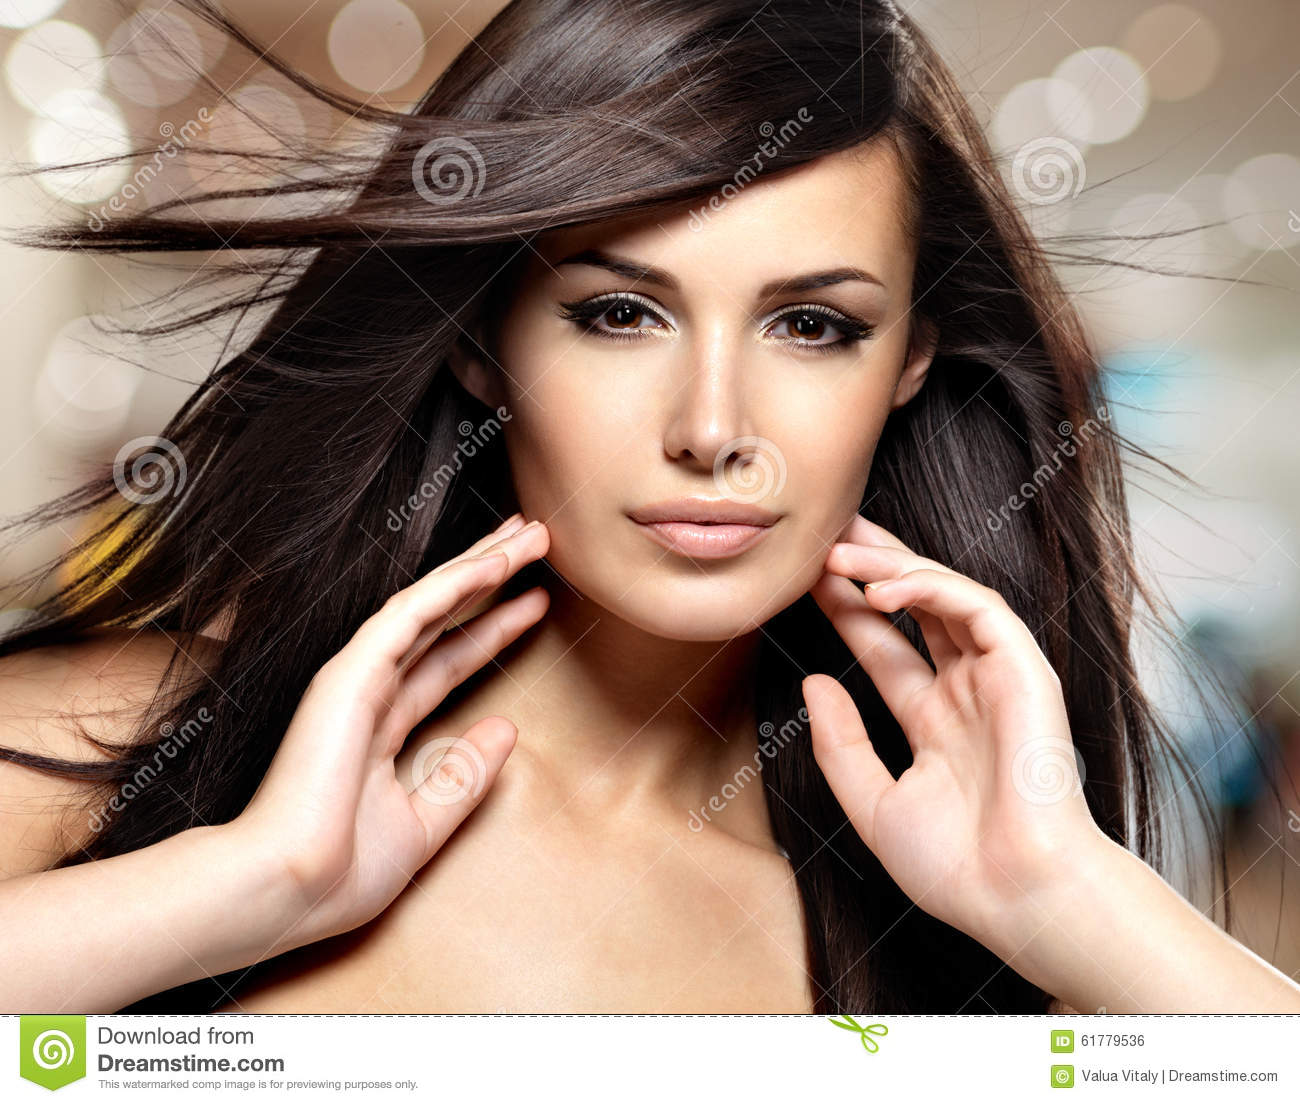 Fashion model with beauty long straight hair.